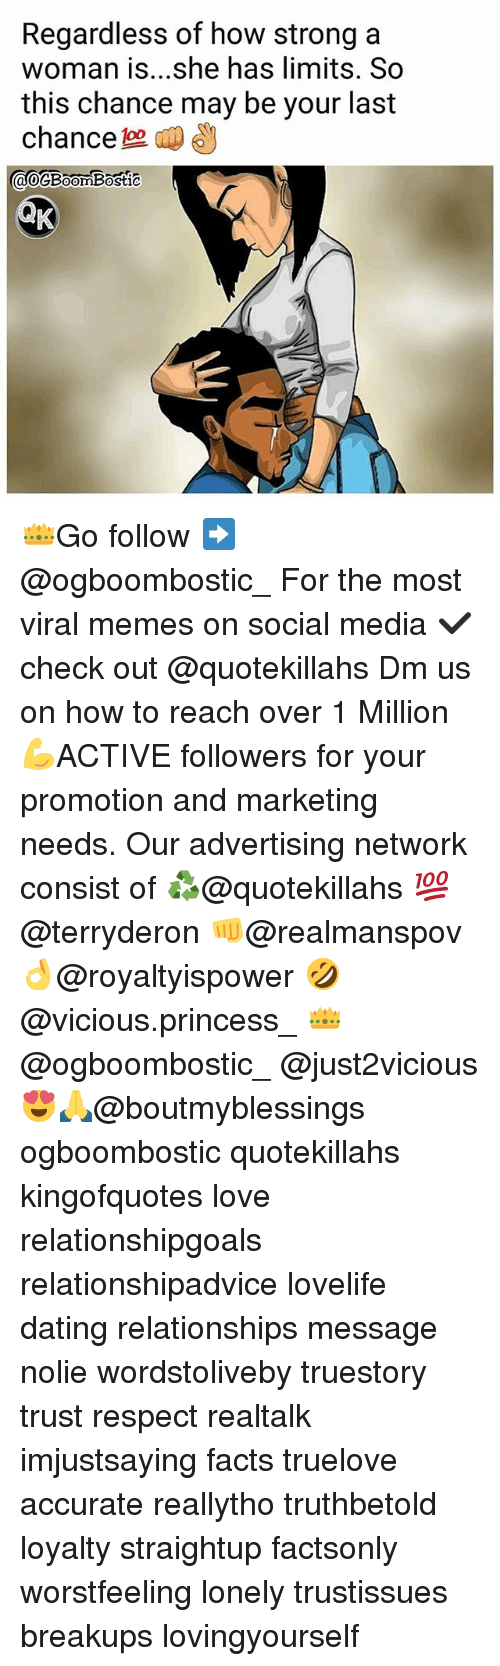 Dating, Facts, and Love: Regardless of how strong a  woman is...she has limits. So  this chance may be your last  chance  ao@BoomBostic  0  0 👑Go follow ➡@ogboombostic_ For the most viral memes on social media ✔check out @quotekillahs Dm us on how to reach over 1 Million💪ACTIVE followers for your promotion and marketing needs. Our advertising network consist of ♻@quotekillahs 💯@terryderon 👊@realmanspov 👌@royaltyispower 🤣@vicious.princess_ 👑@ogboombostic_ @just2vicious😍🙏@boutmyblessings ogboombostic quotekillahs kingofquotes love relationshipgoals relationshipadvice lovelife dating relationships message nolie wordstoliveby truestory trust respect realtalk imjustsaying facts truelove accurate reallytho truthbetold loyalty straightup factsonly worstfeeling lonely trustissues breakups lovingyourself